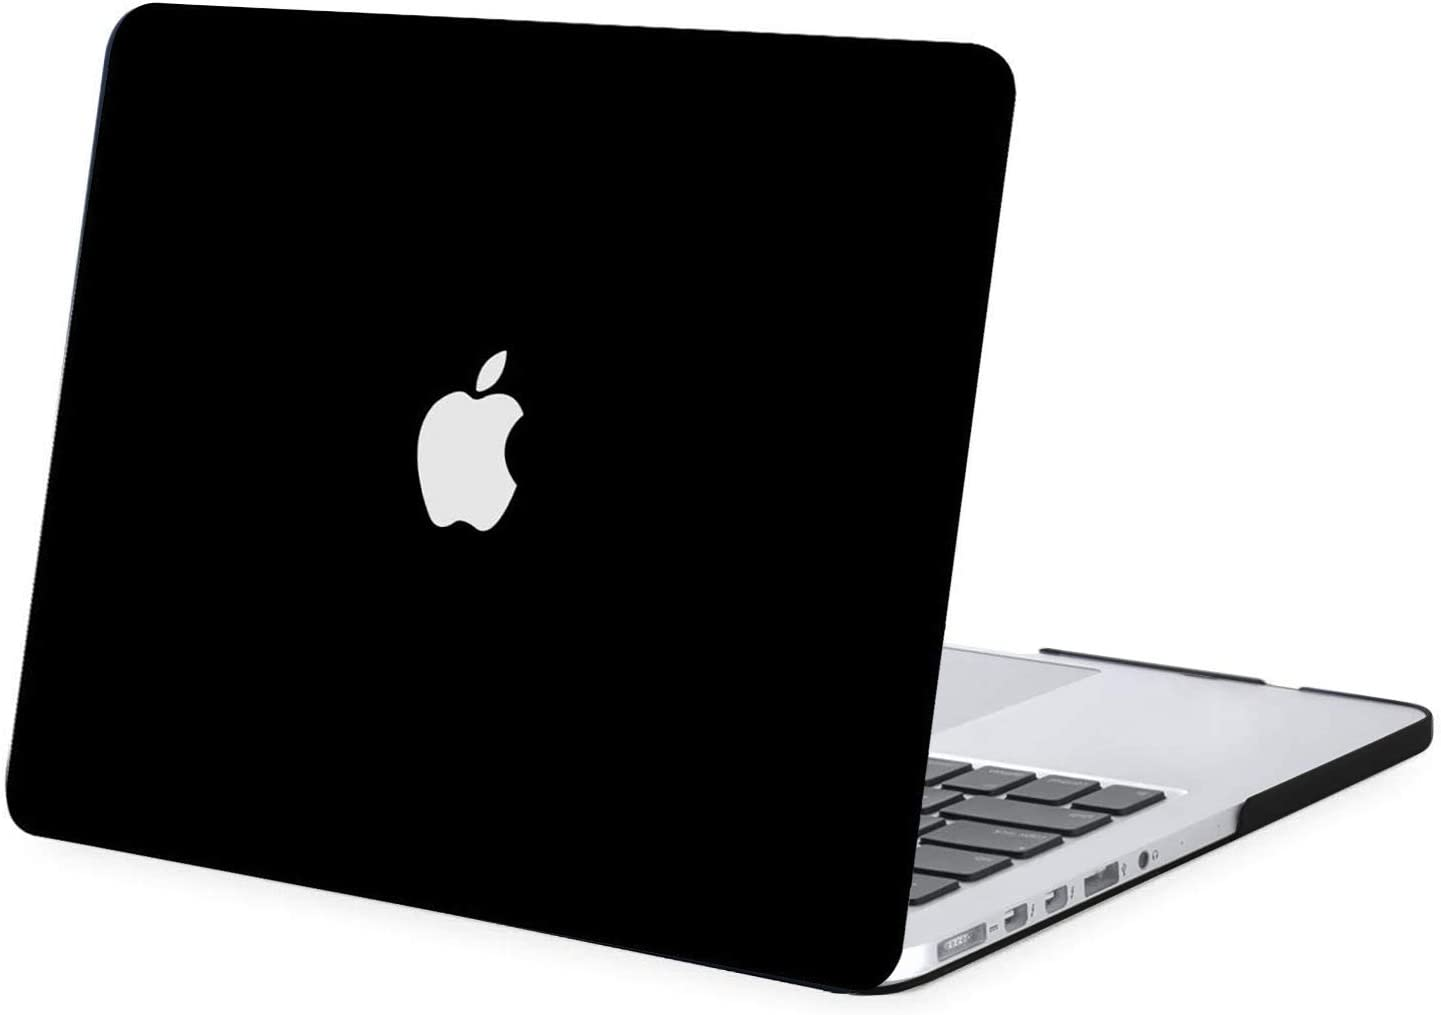 MOSISO Plastic Hard Shell Case Cover Only Compatible with Older Version MacBook Pro Retina 13 Inch (Models: A1502 & A1425) (Release 2015 - end 2012), Black